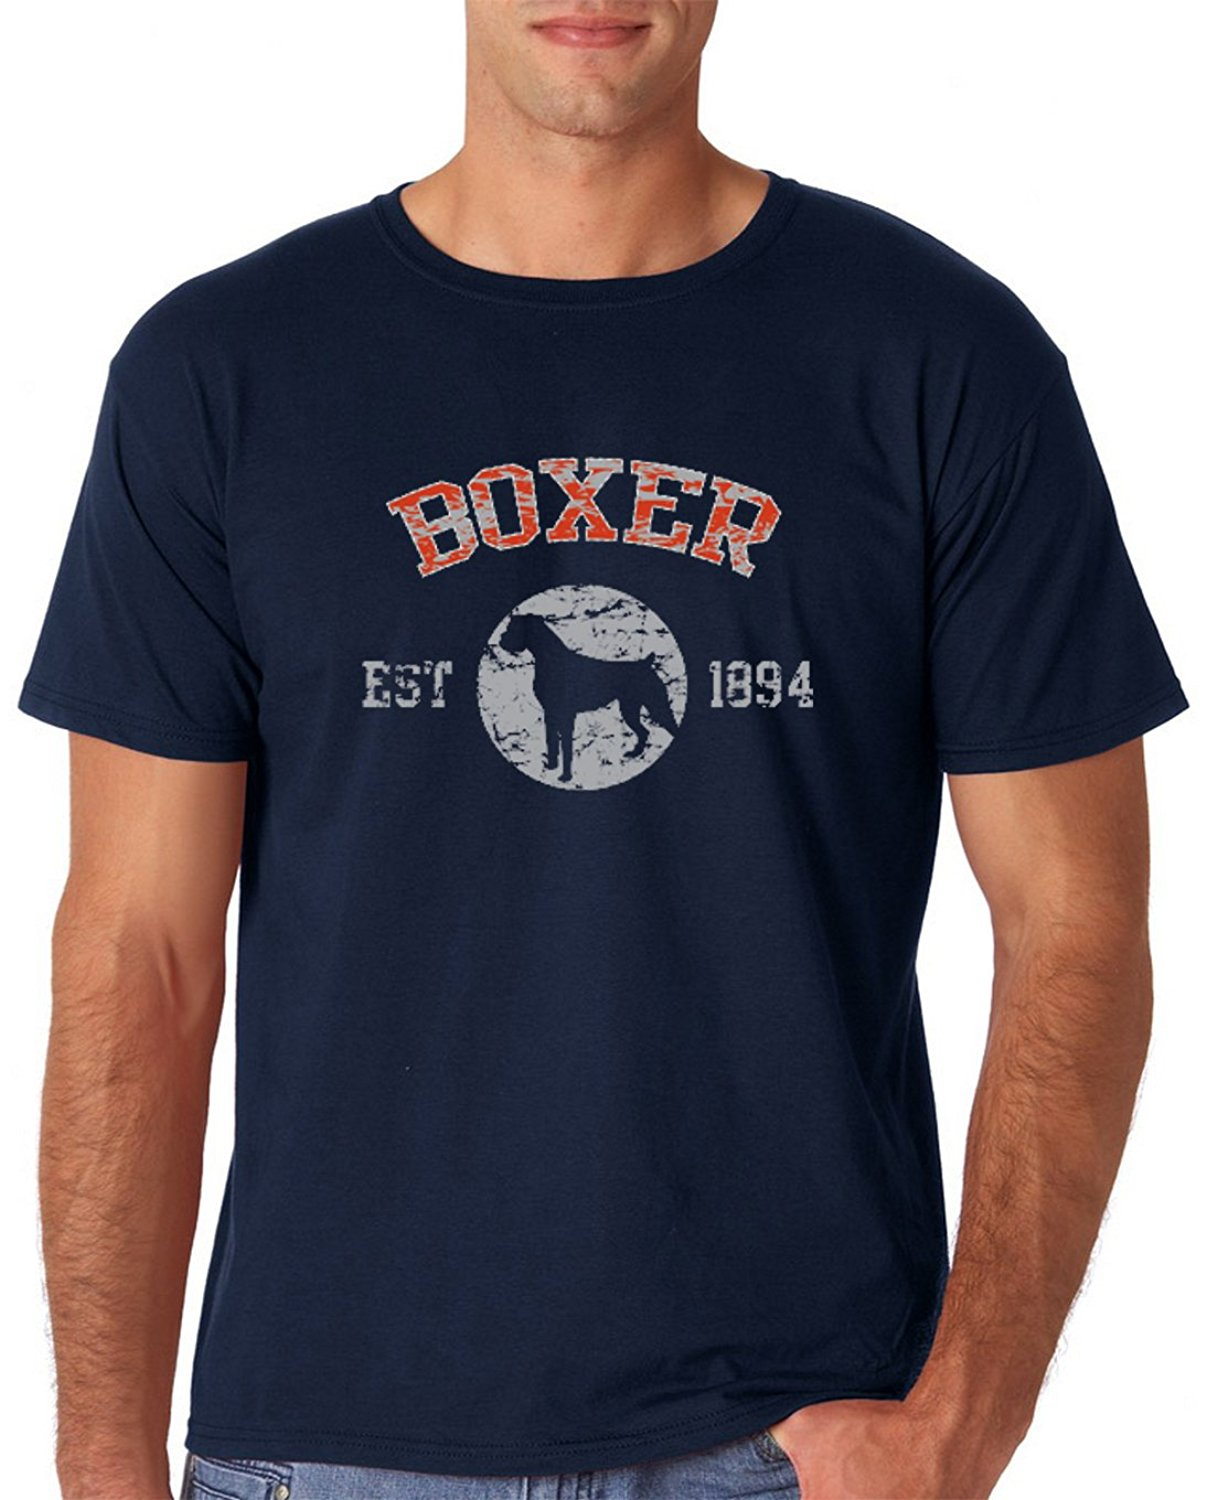 Design your own t-shirt for dogs - Boxer 1894 Dog Lover T Shirt